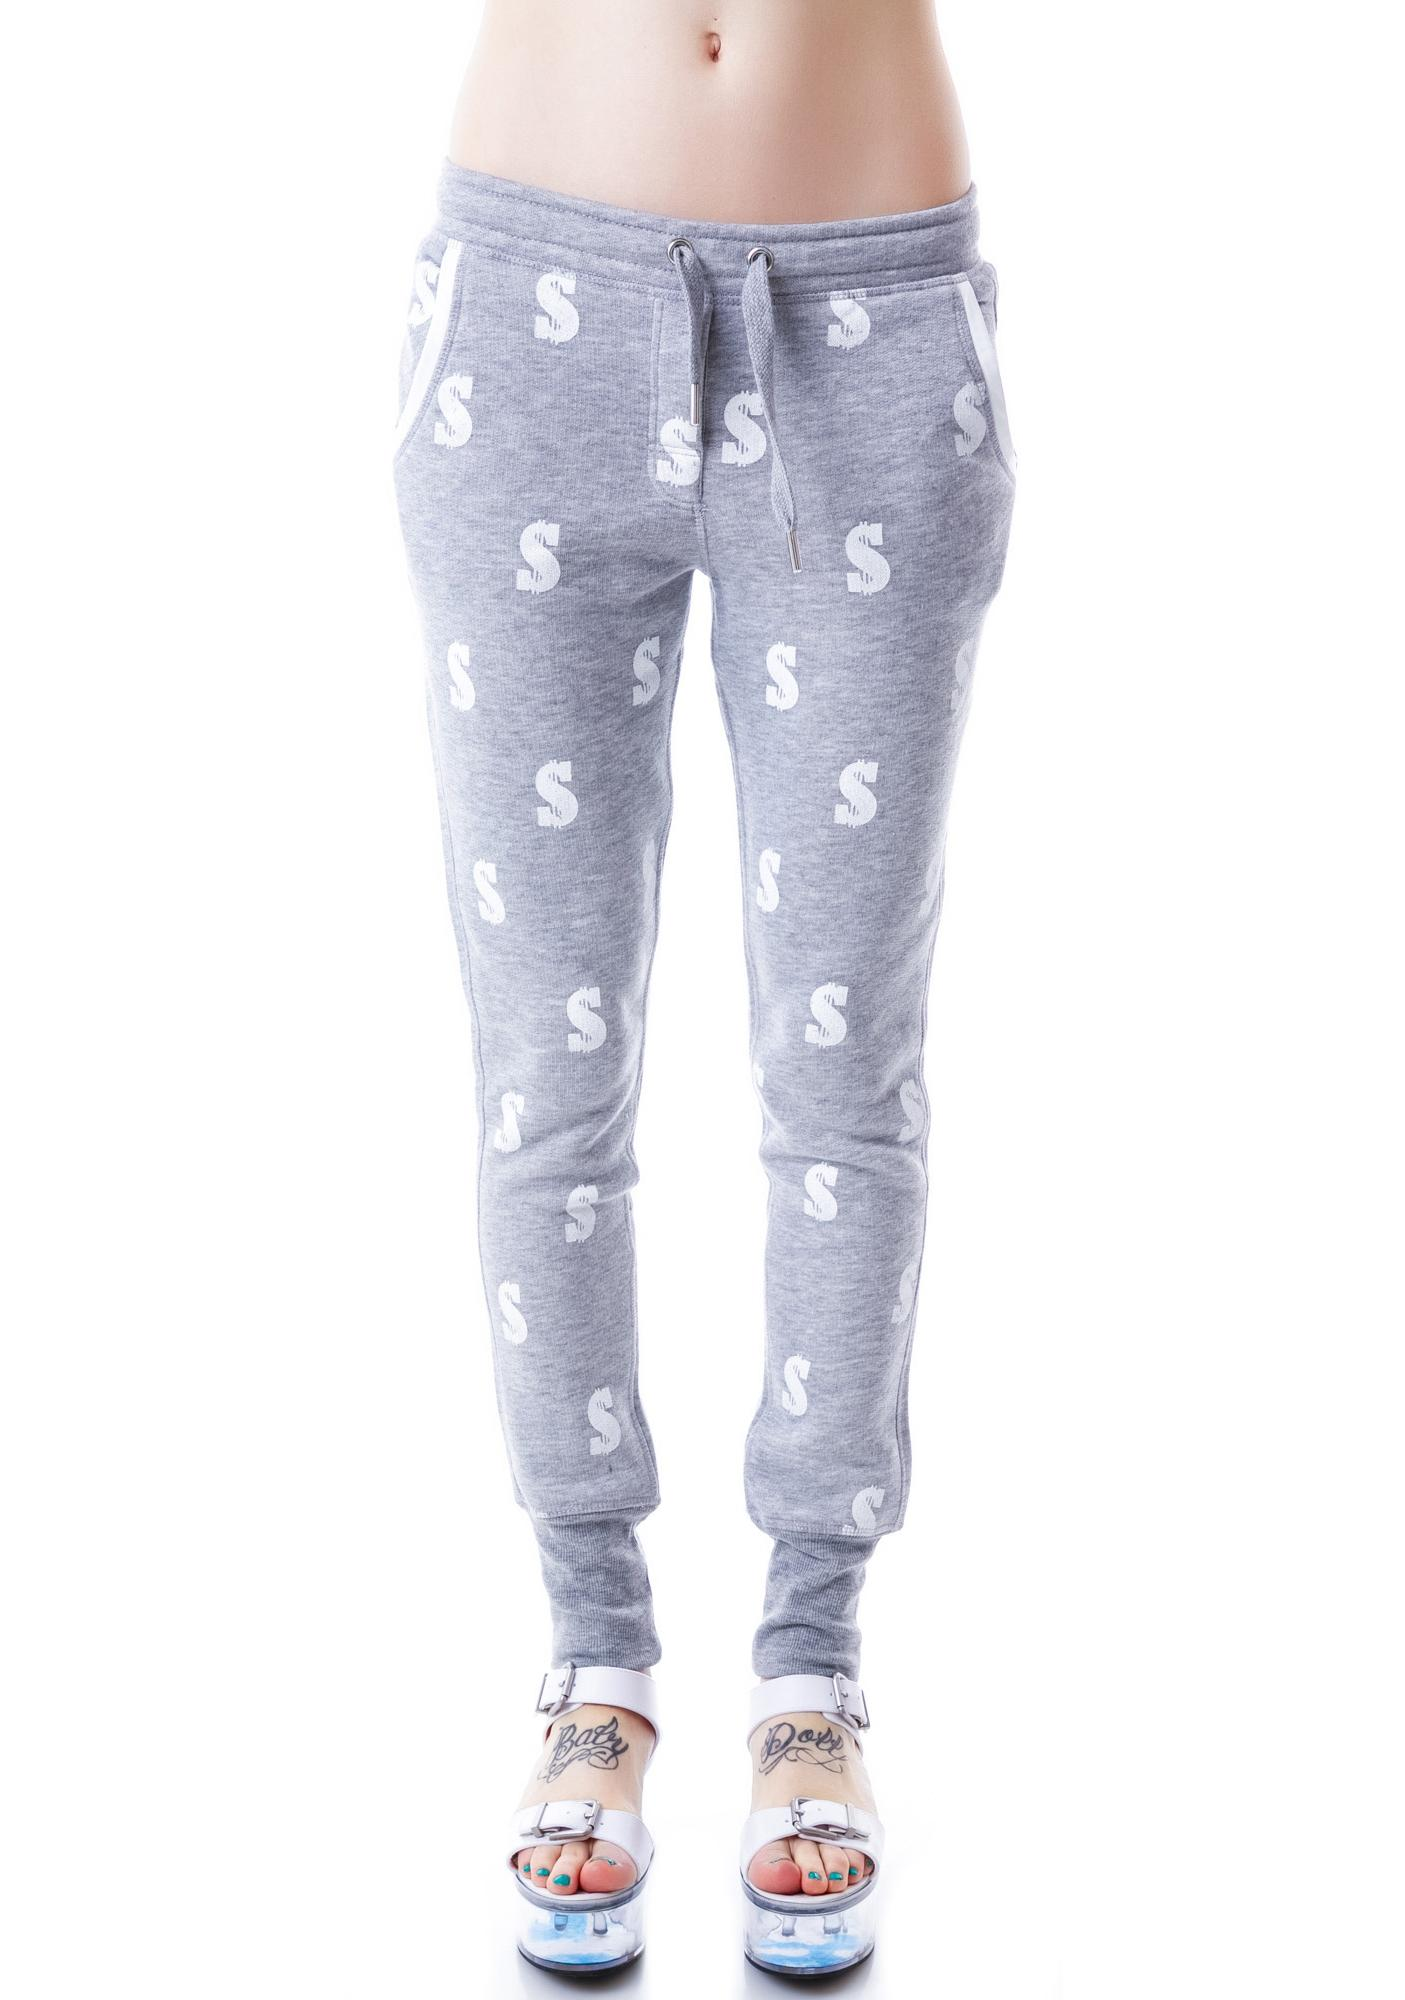 Zoe Karssen Dollar All Over Loose Fit Sweatpants